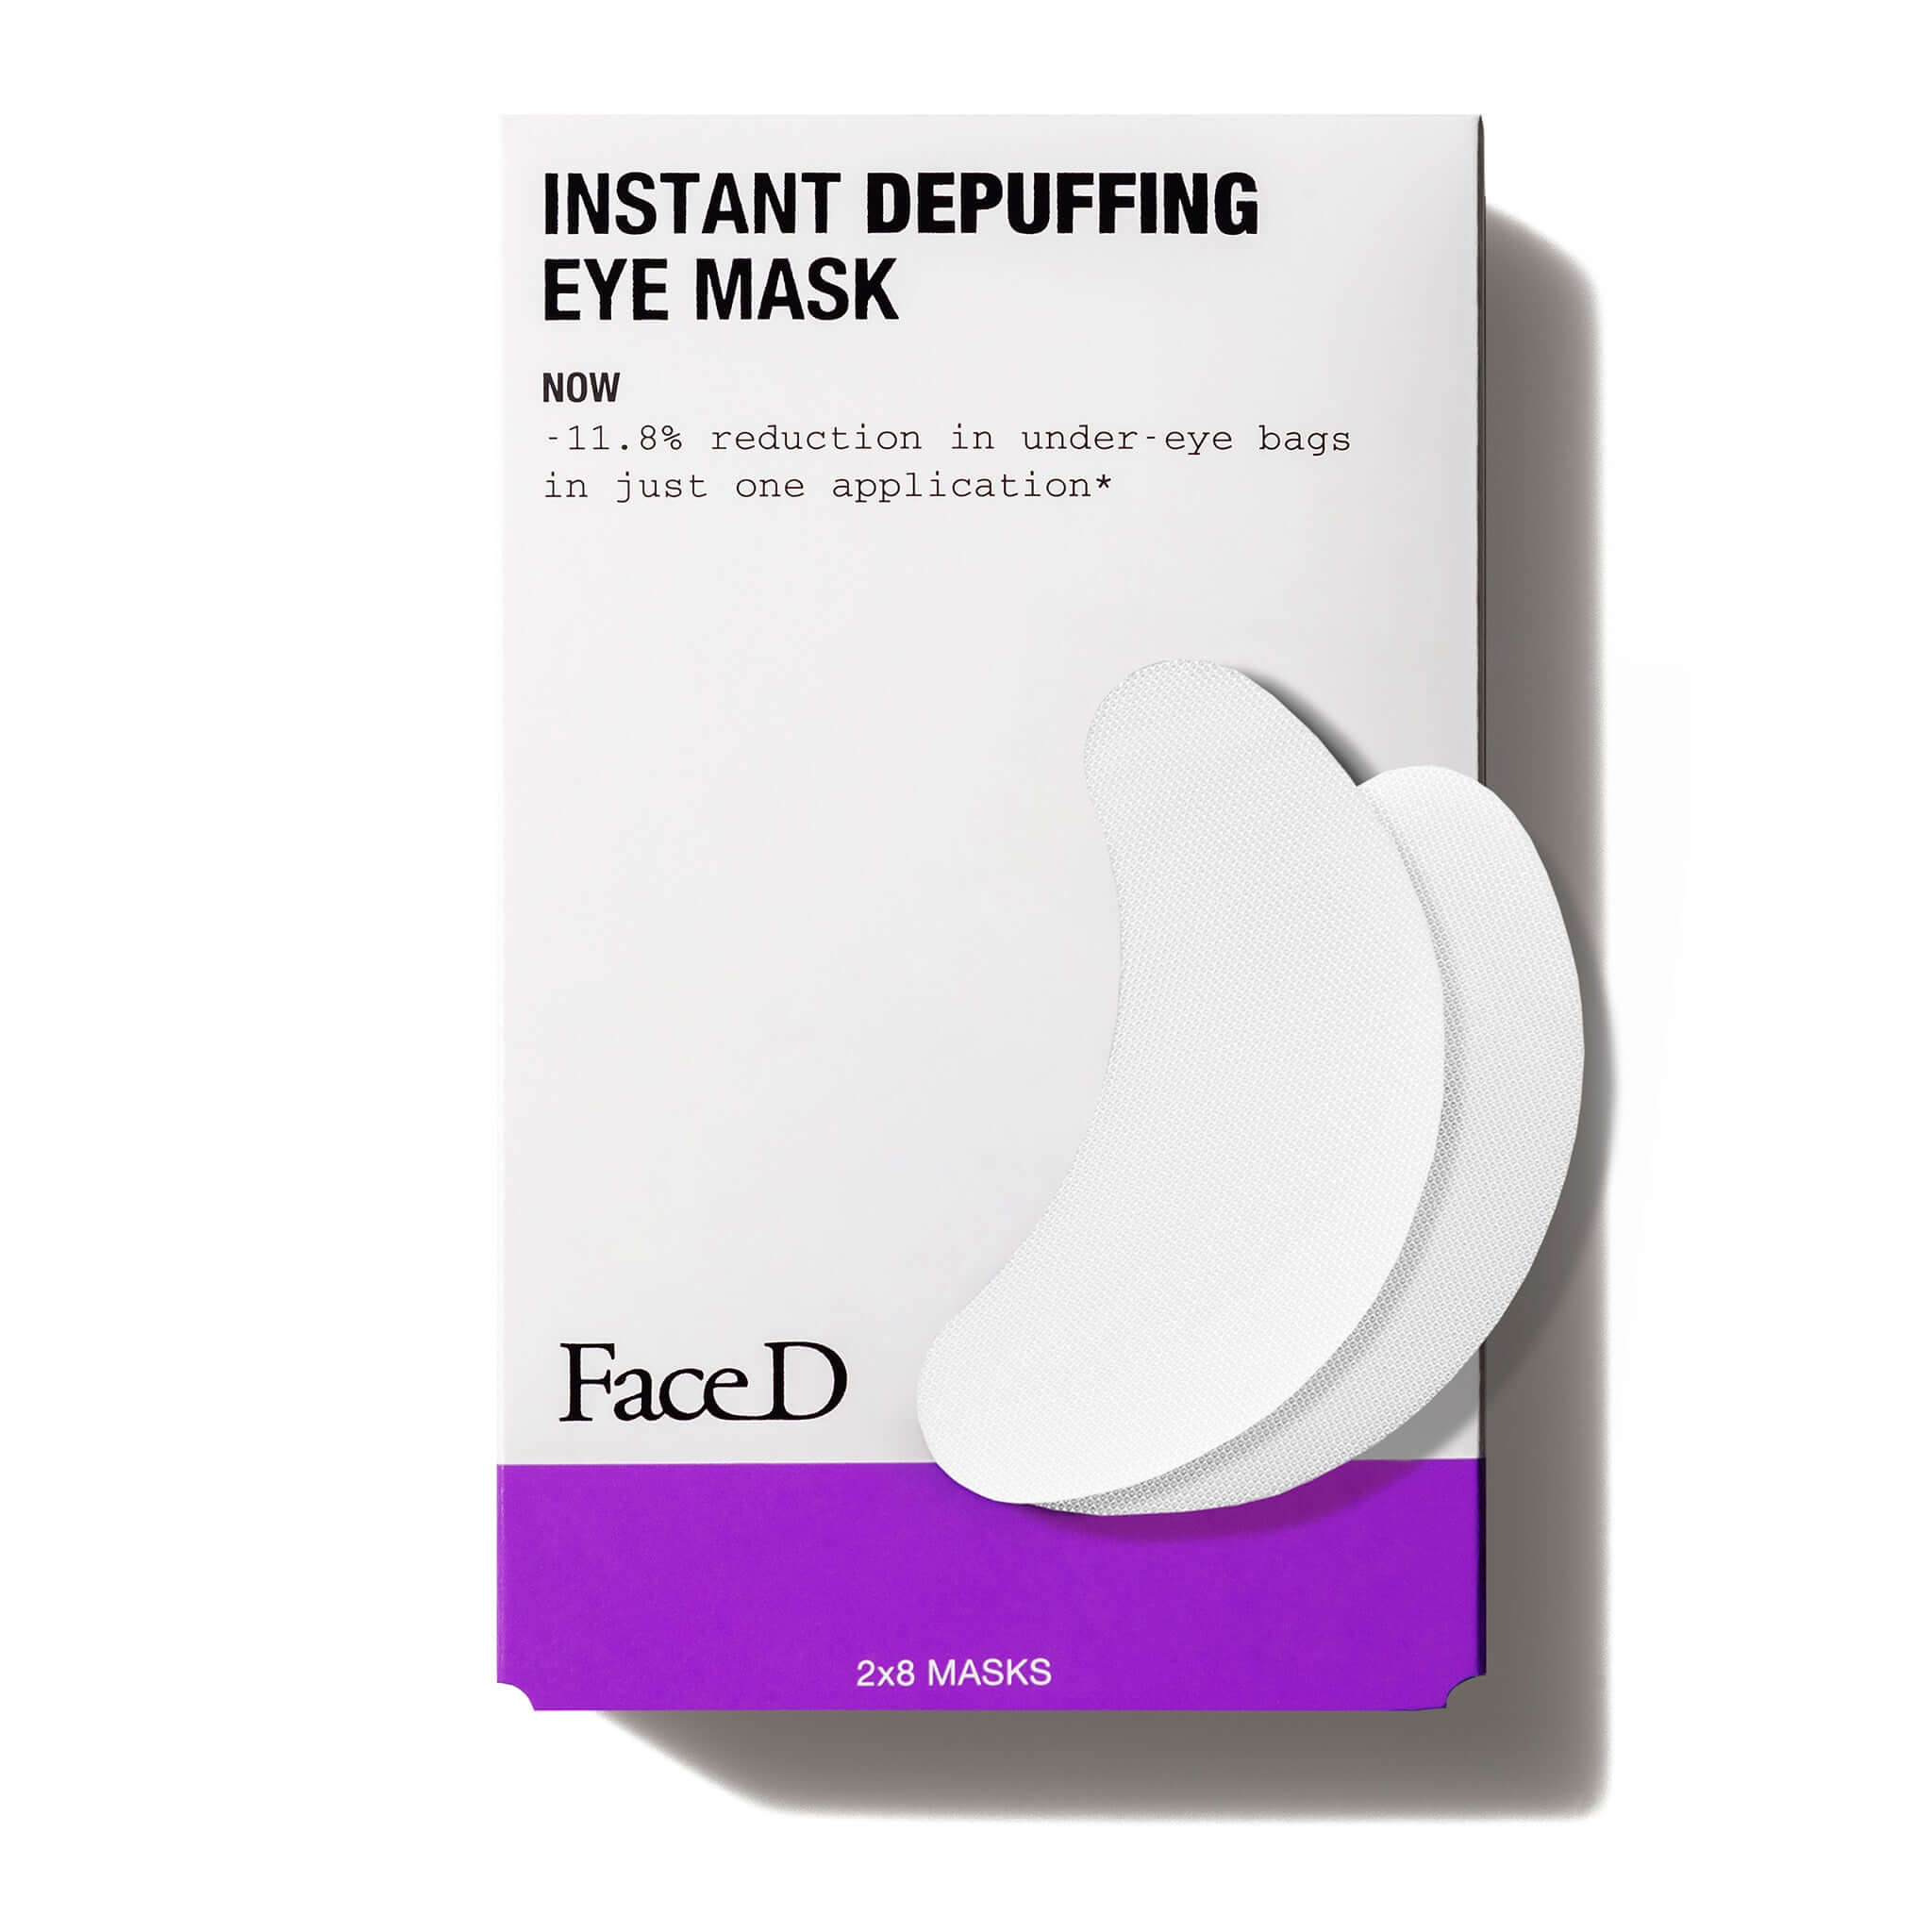 Instant-Effect-Depuffing-Eye-Mask-FaceD-Eye-Lip-Care || Maschera-contorno-occhi-defaticante-FaceD-Occhi-labbra